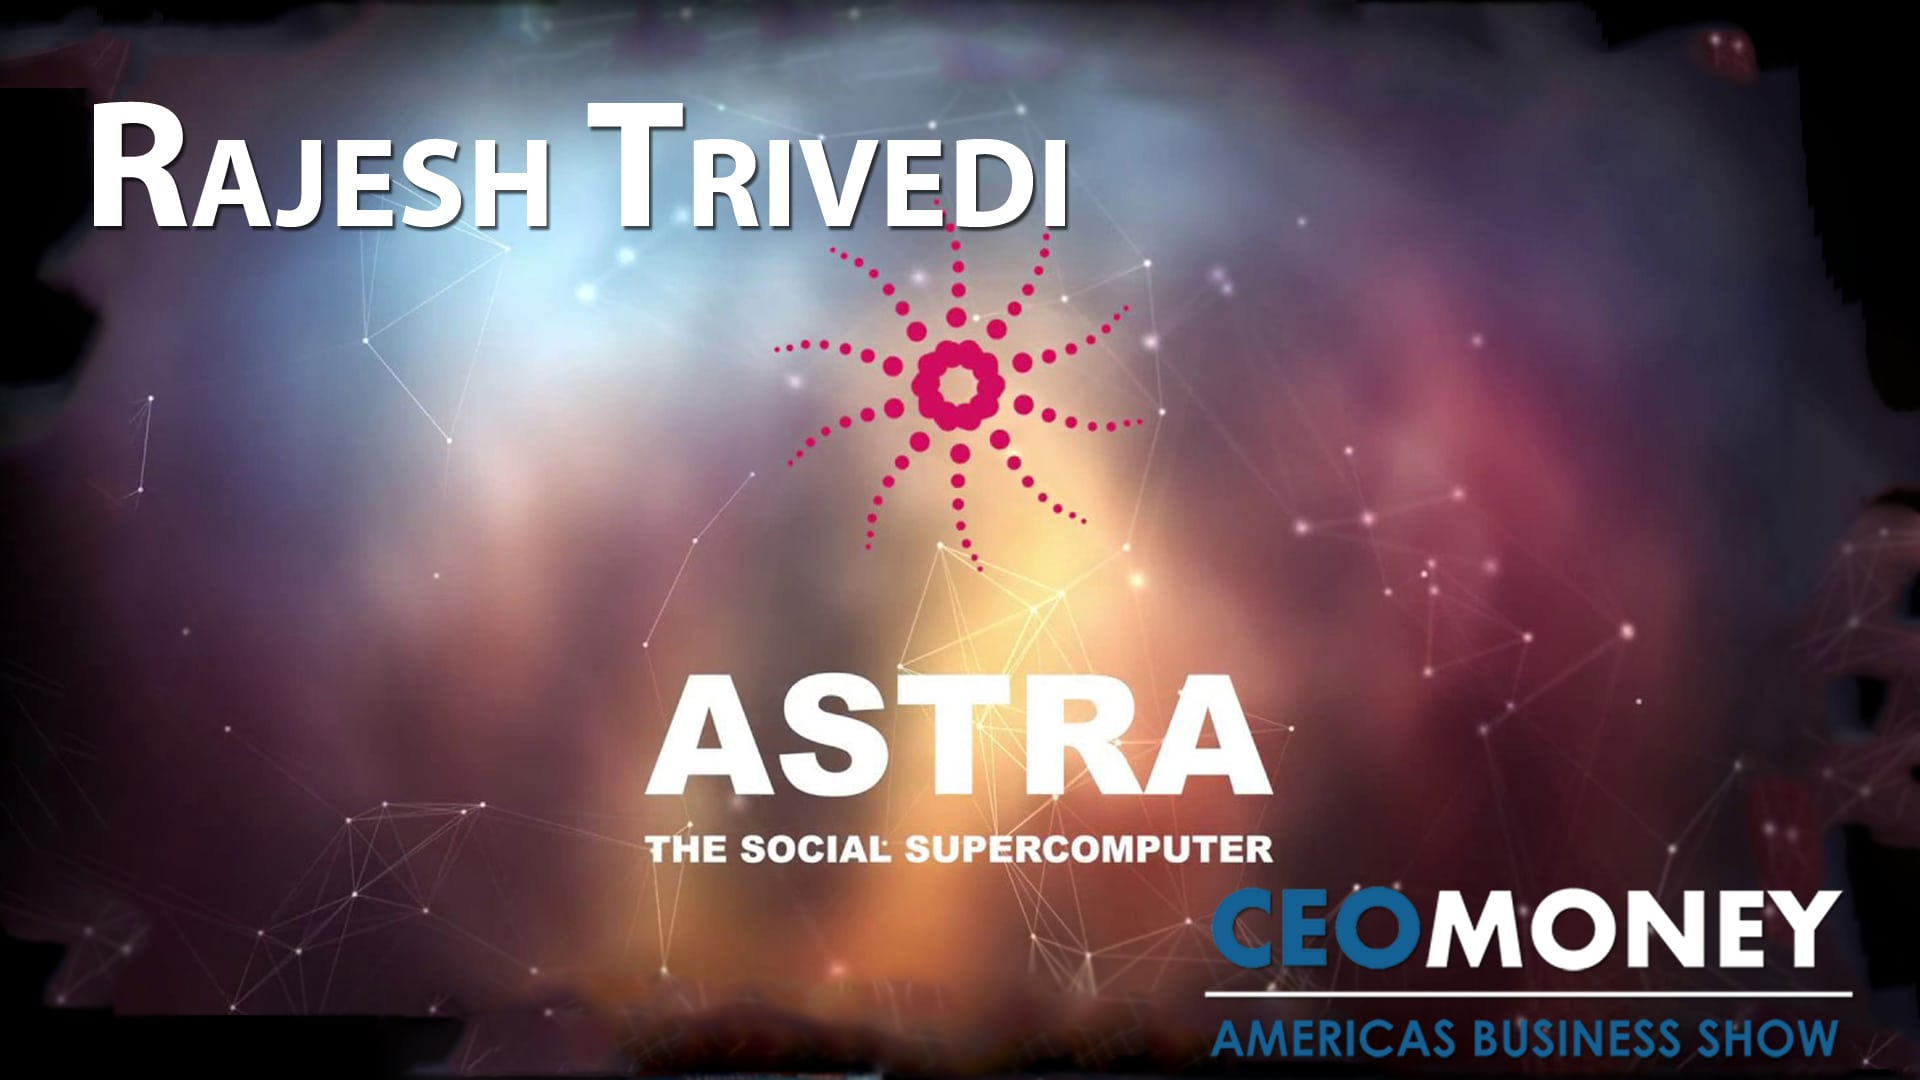 Rajesh Trivedi is buiding a blockchain social supercomputer to drive scientific discovery